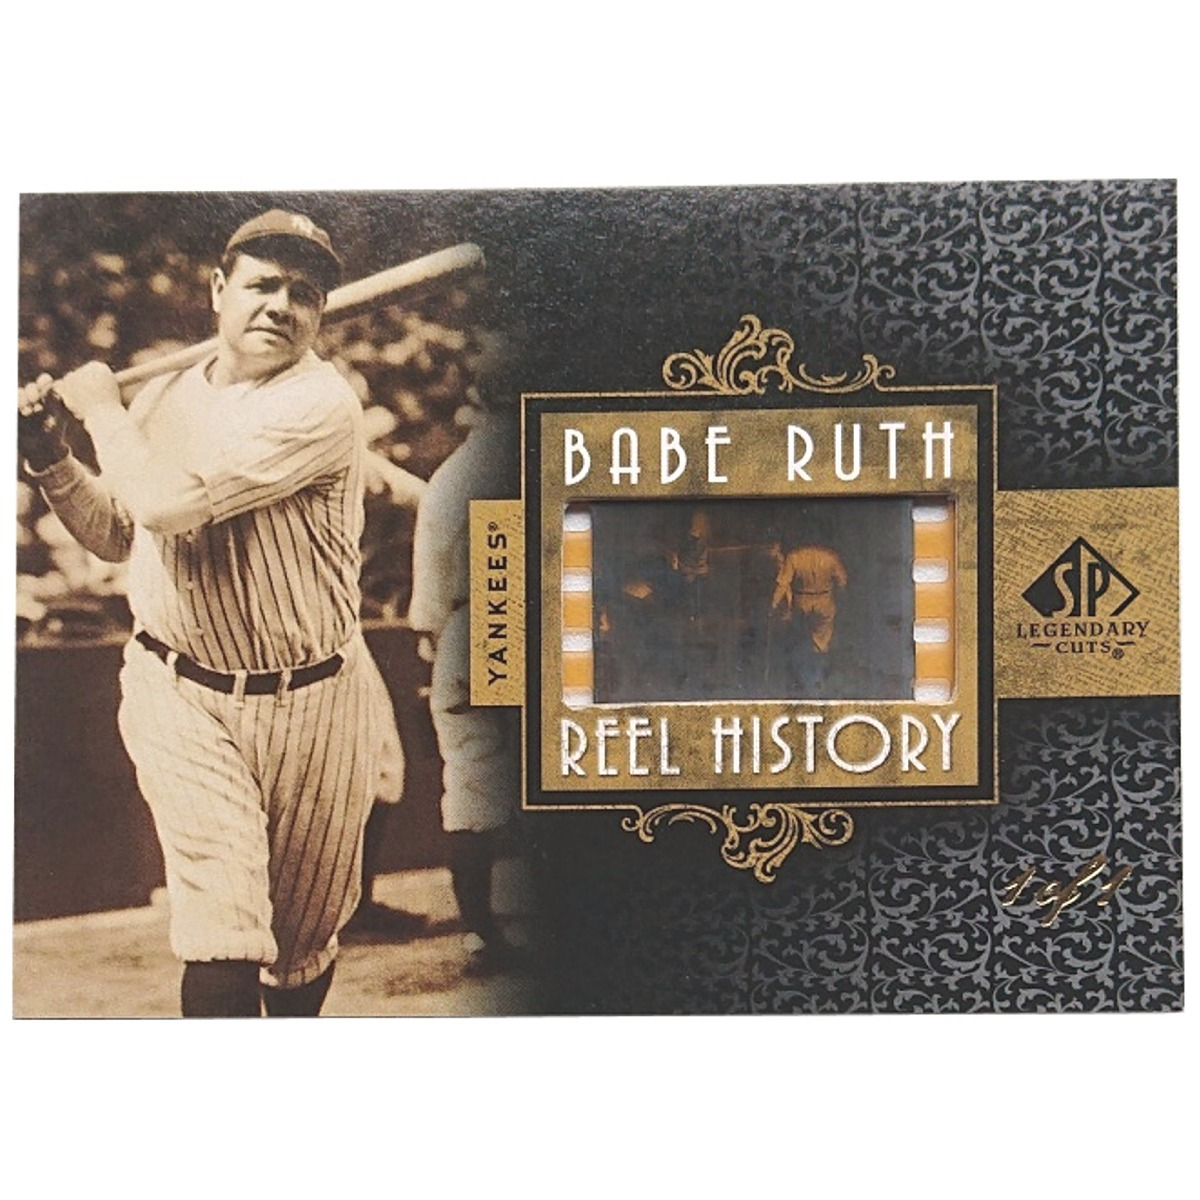 【1 of 1 Film】 Babe Ruth 2007 UD Sp Legendary Cuts Babe Ruth Reel History 1枚限定 ■検索:ベーブ・ルース フィルム カード 1/1_画像2